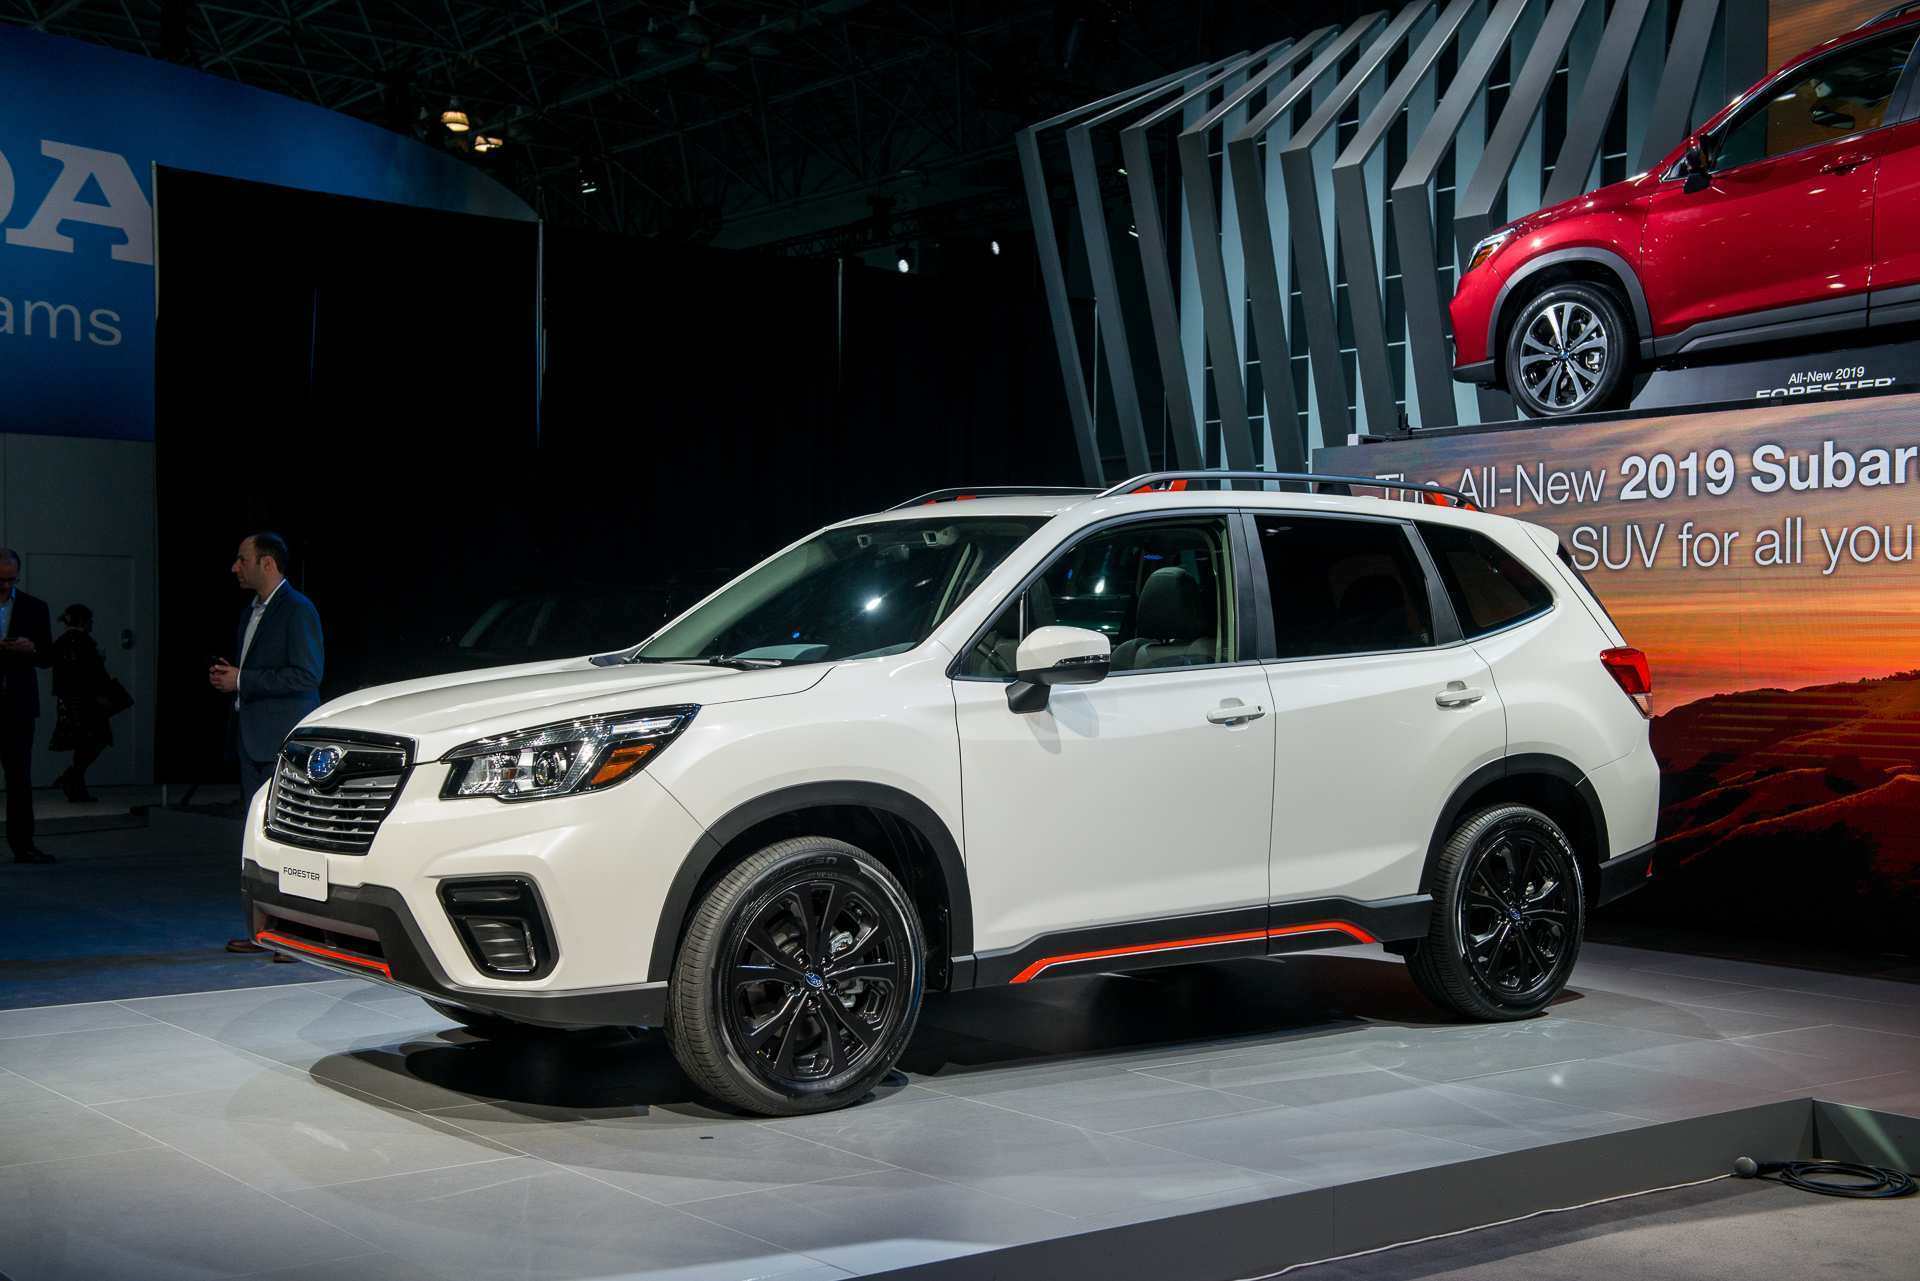 66 Best Review Subaru Sport 2019 Price and Review with Subaru Sport 2019